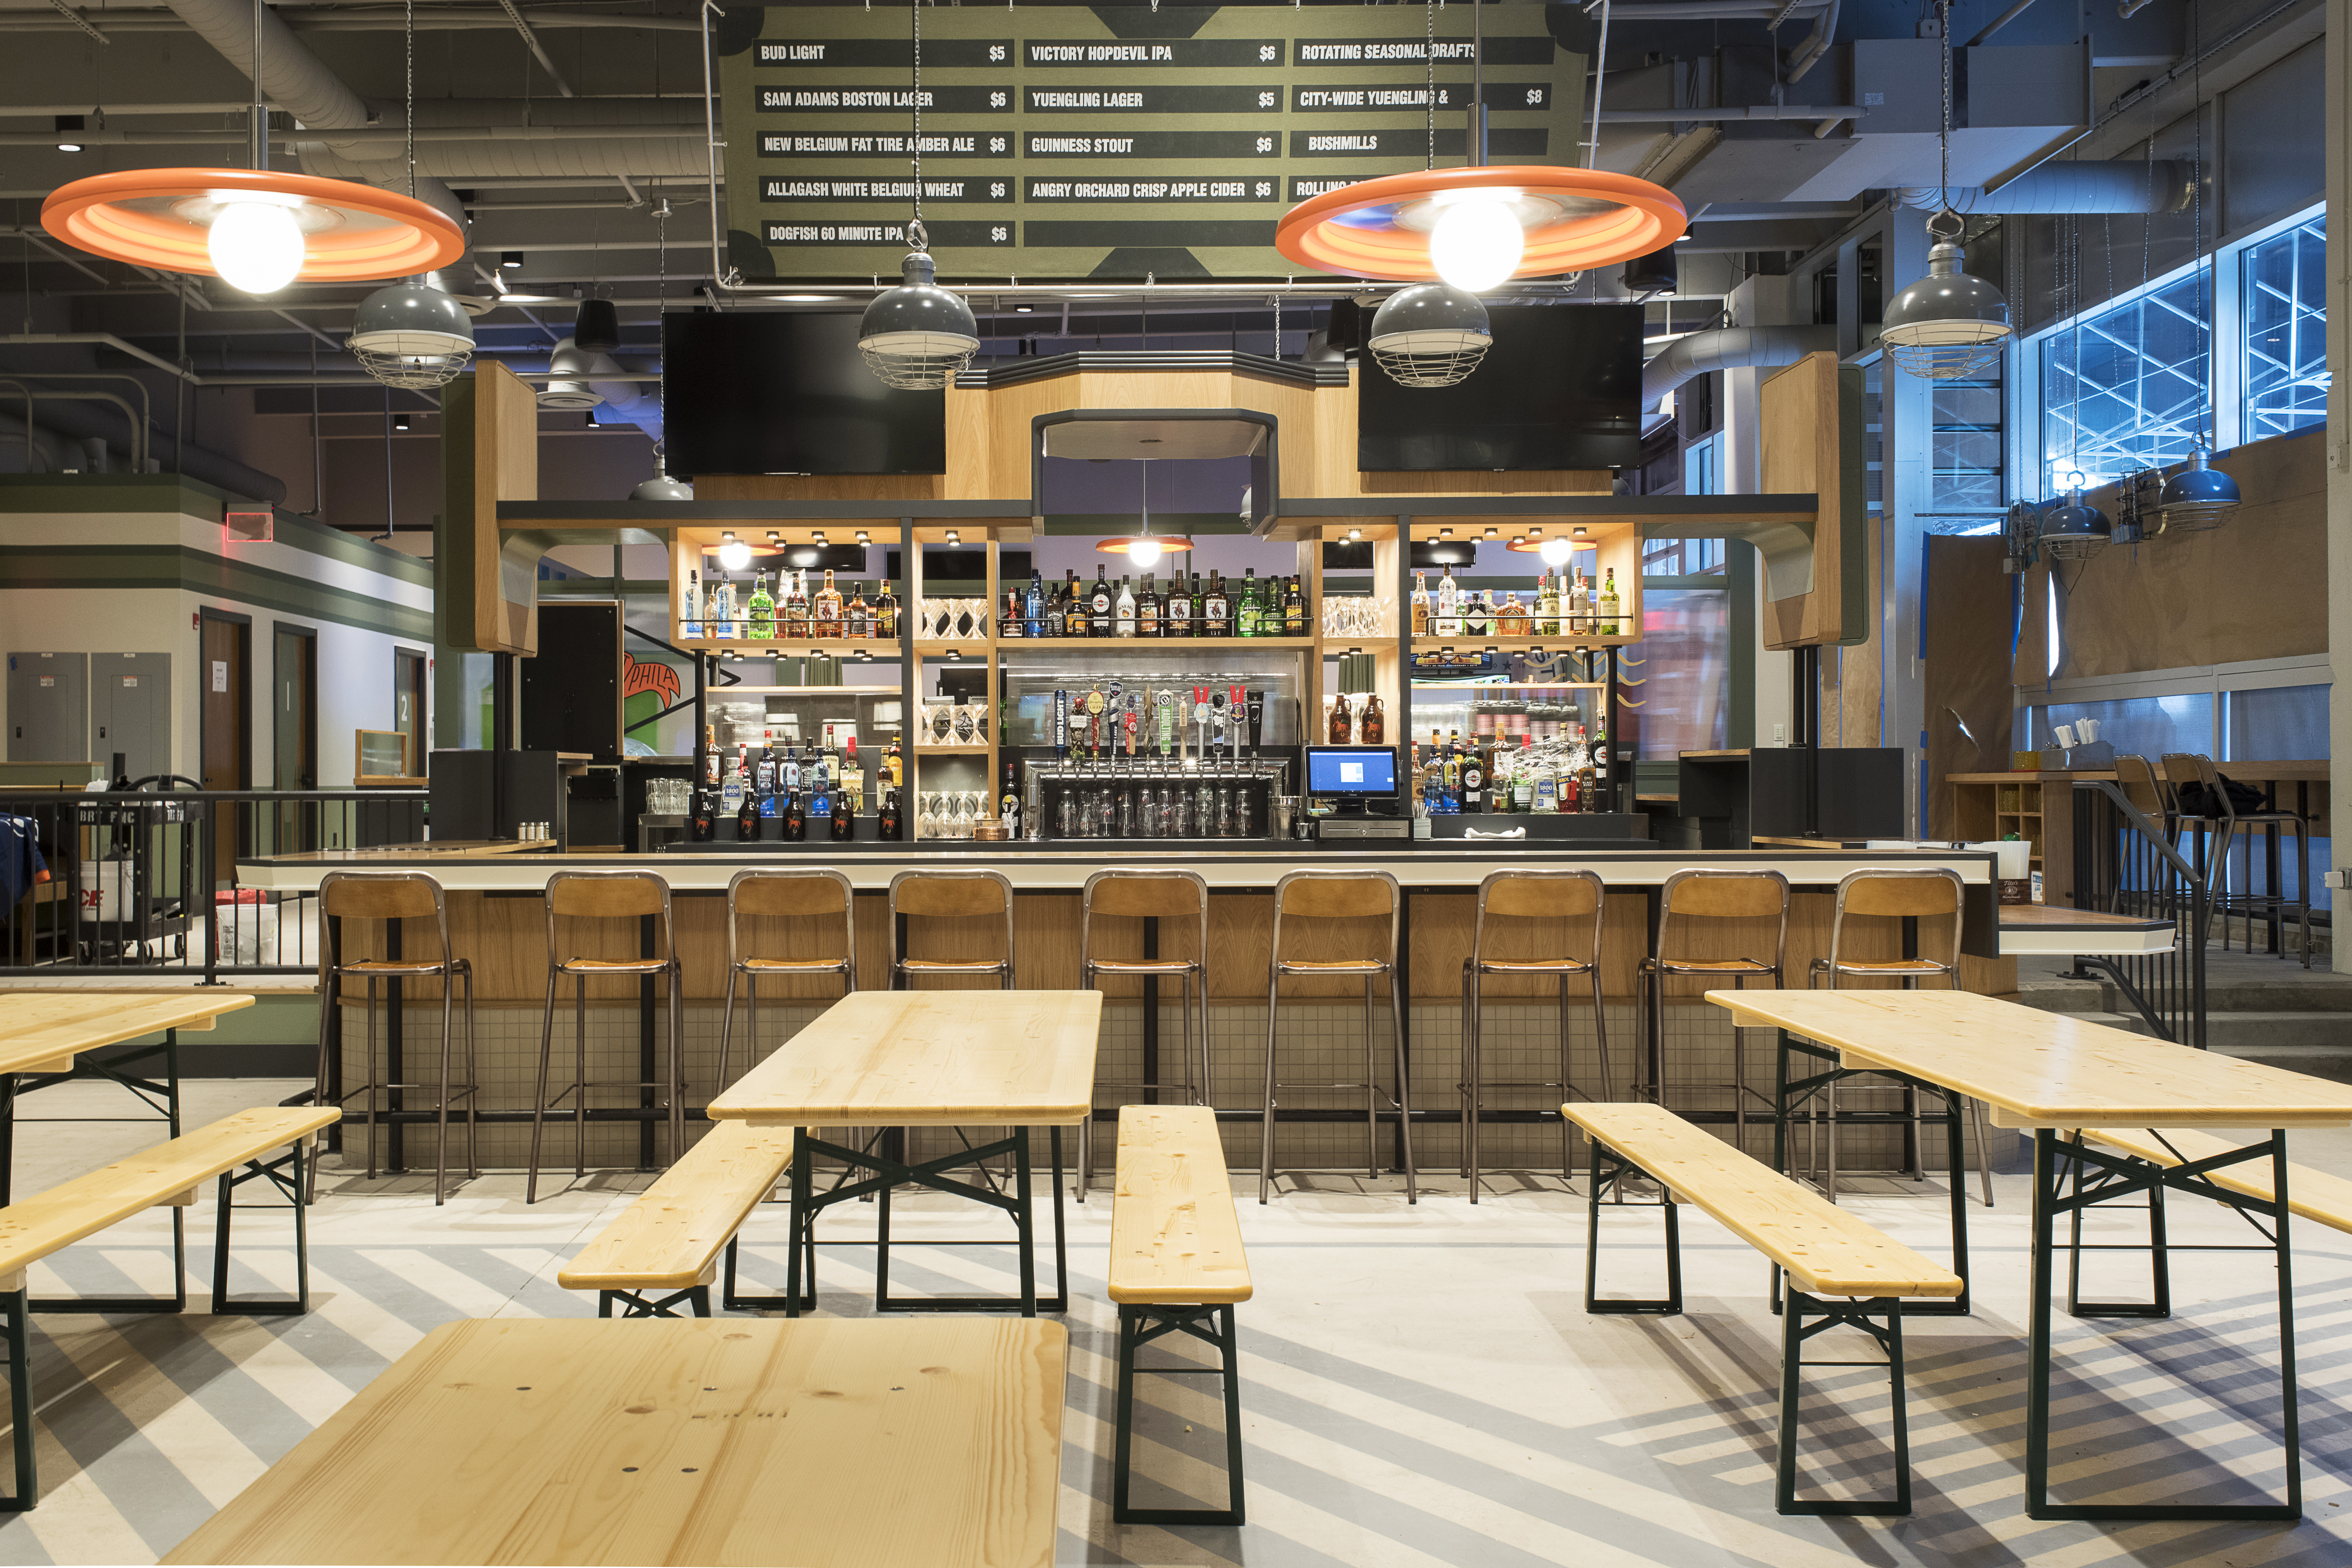 Arcade Games and Beer Are the Draw at University City's Big New Bar